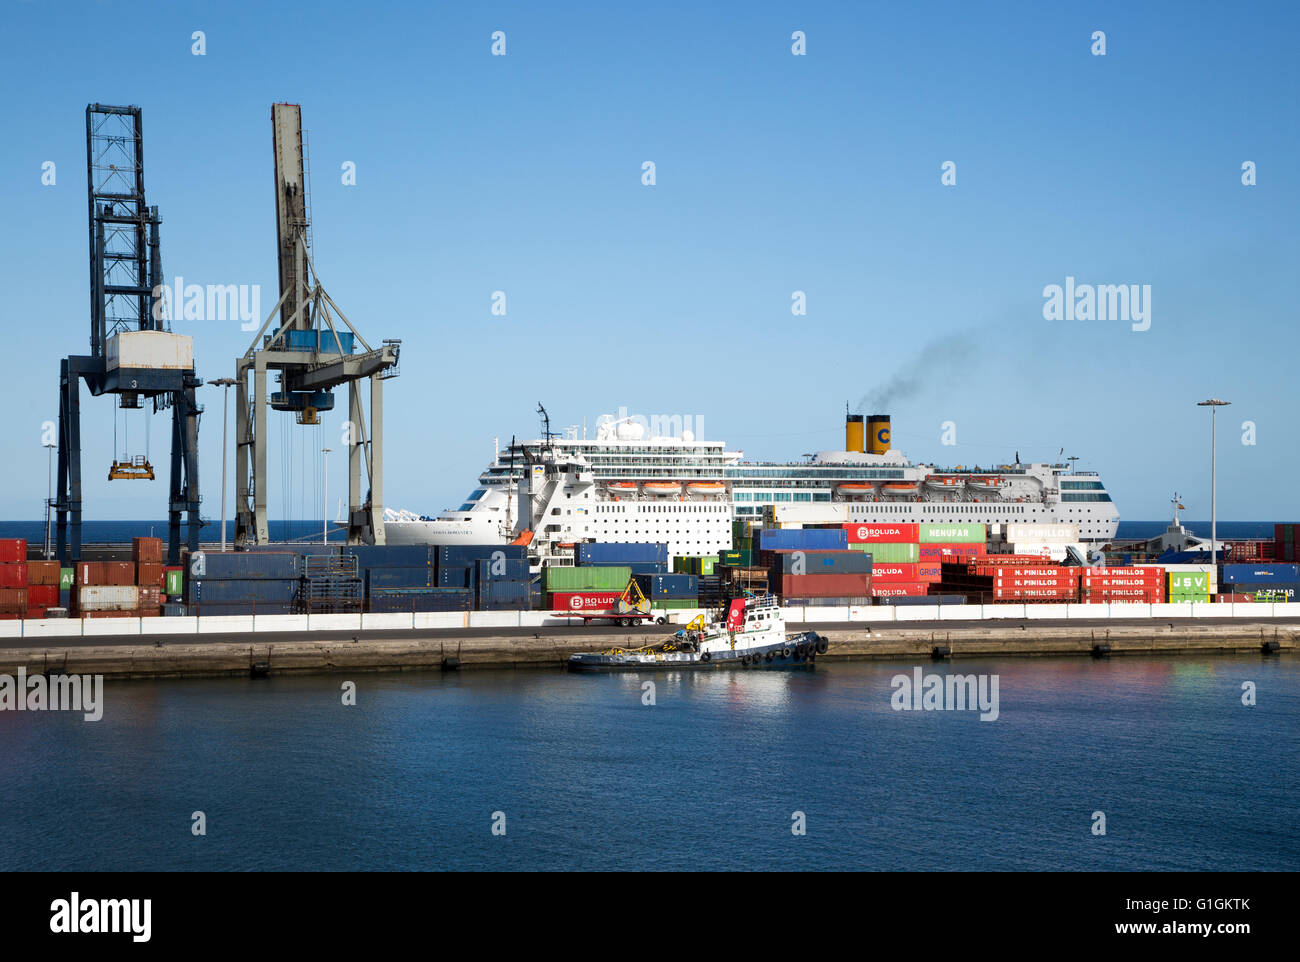 Cruise ship and cranes in port area of Arrecife, Lanzarote, Canary Islands, Spain - Stock Image